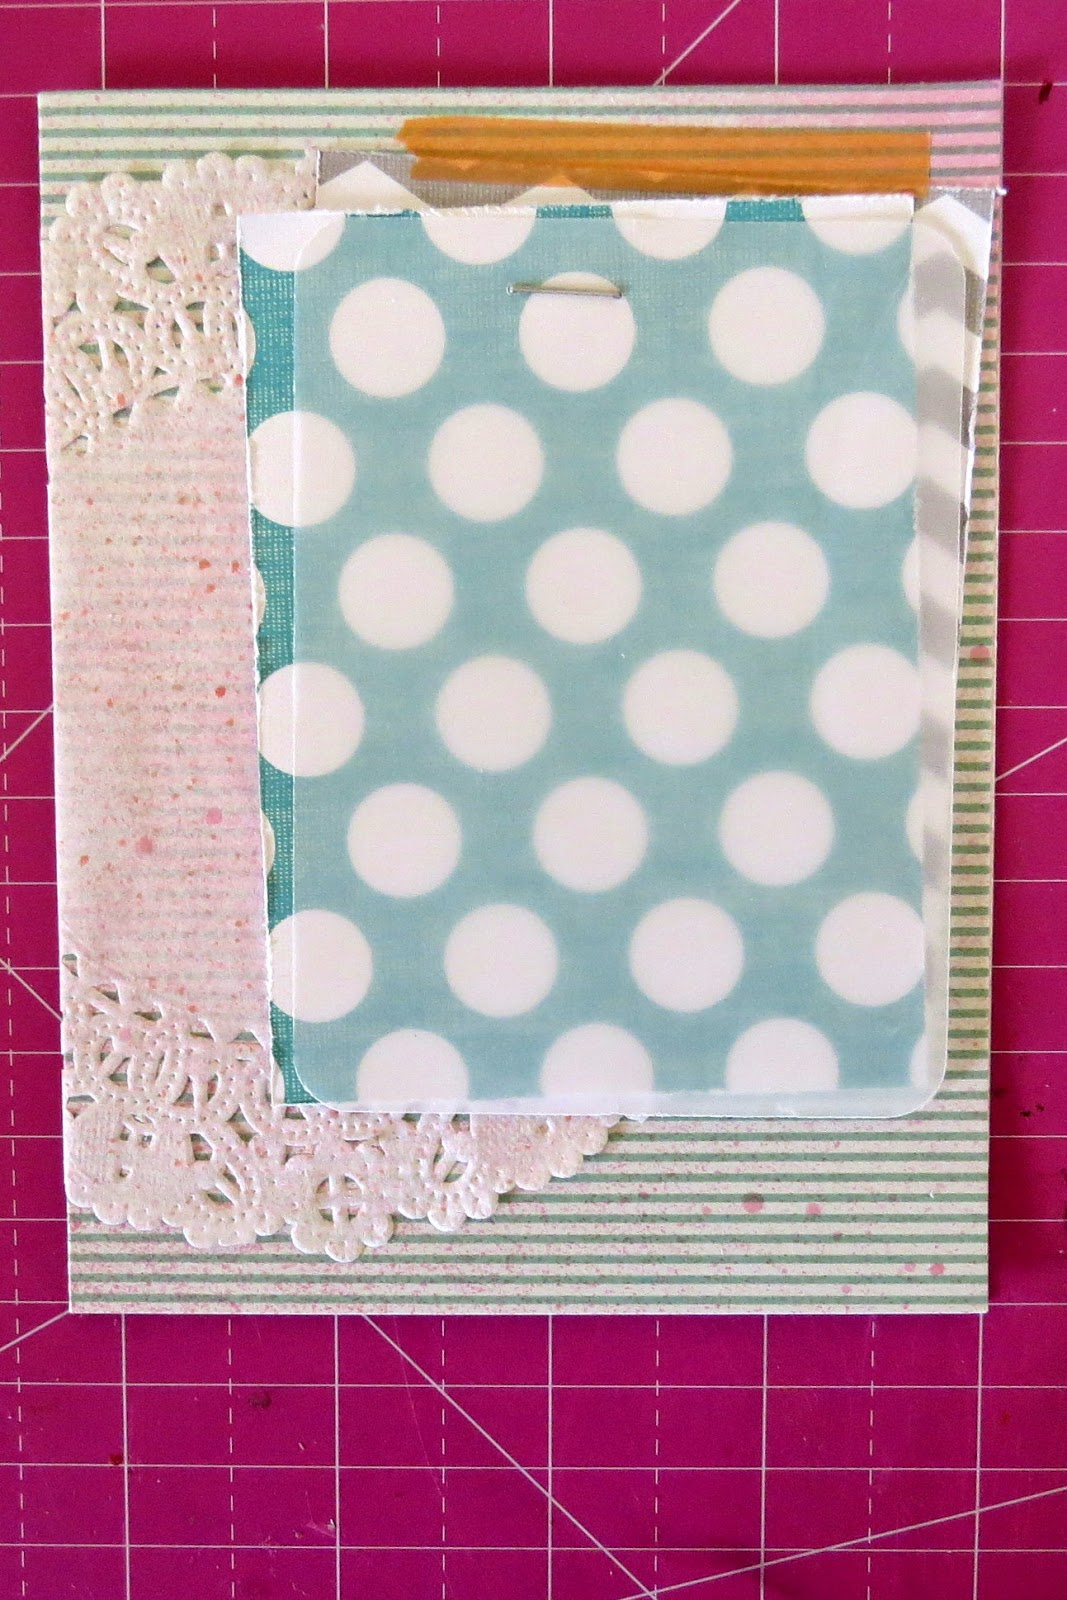 SRM Stickers Blog - Doily Thank You Card Tutorial by Shannon - #card #thanks #doilies #stickers #stitches #borders $fancy #sentiments #tutorial